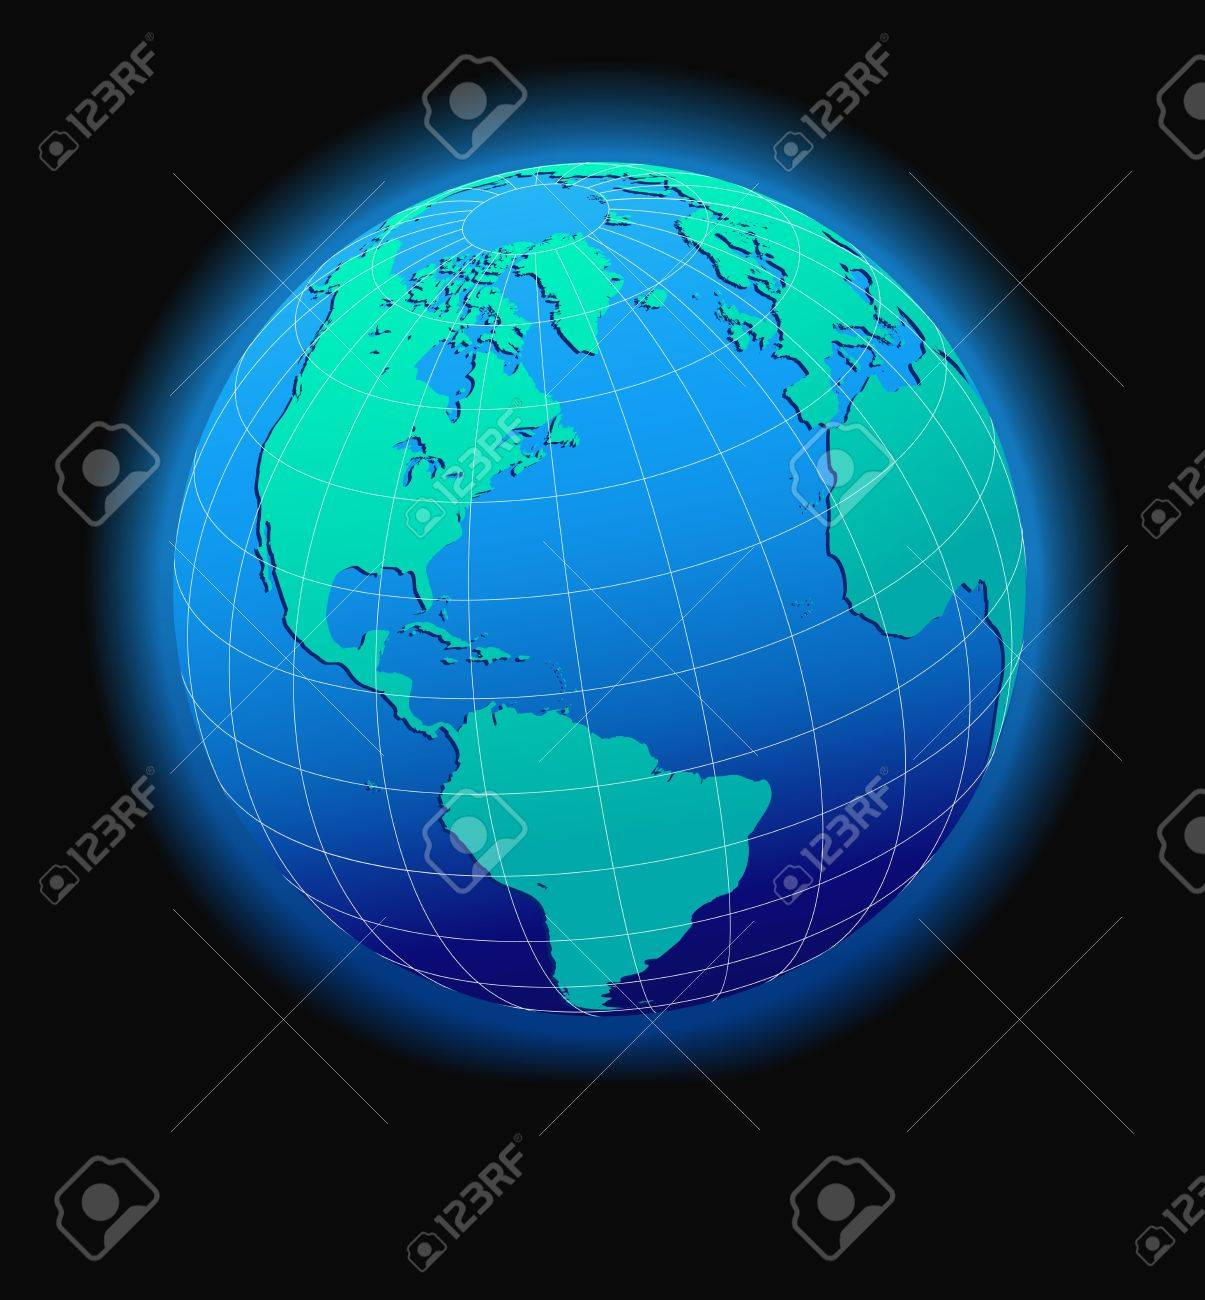 Australia Global Map.Asia And Australia Global World In Space Map Icon Of The World